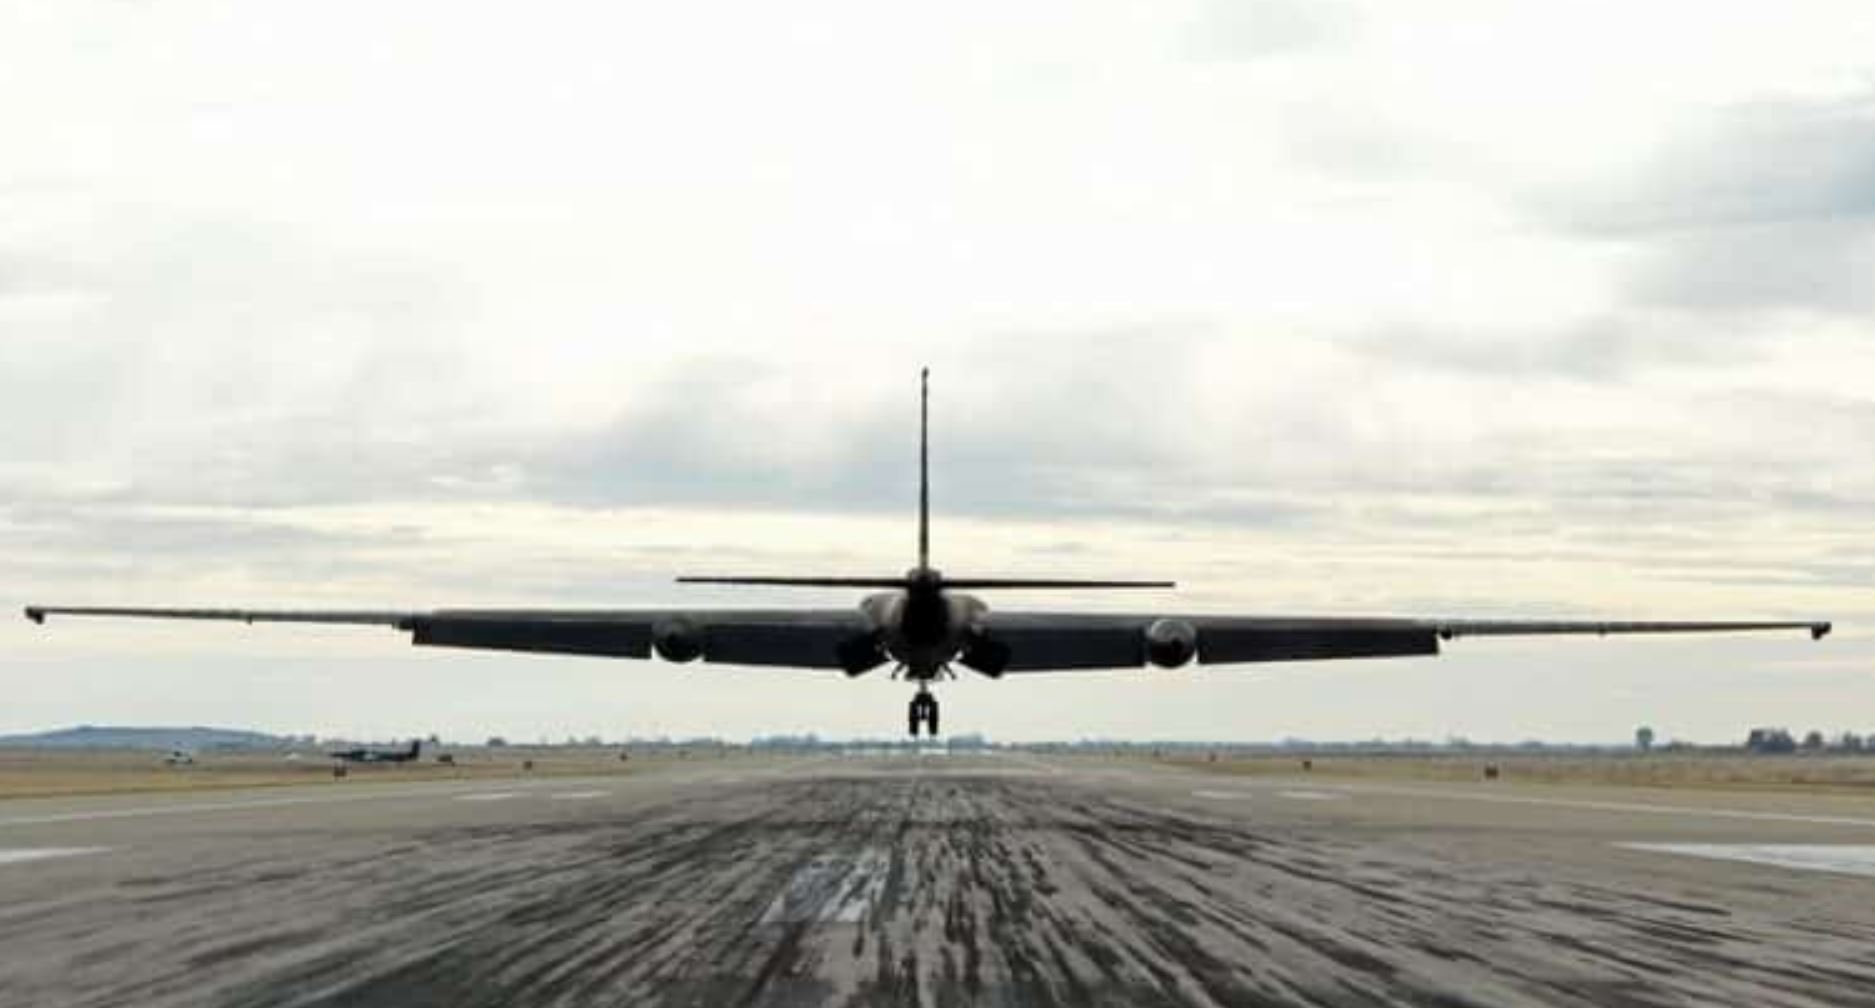 AI Takes Autonomous Control To Fly U-2 Spy Plane Mission